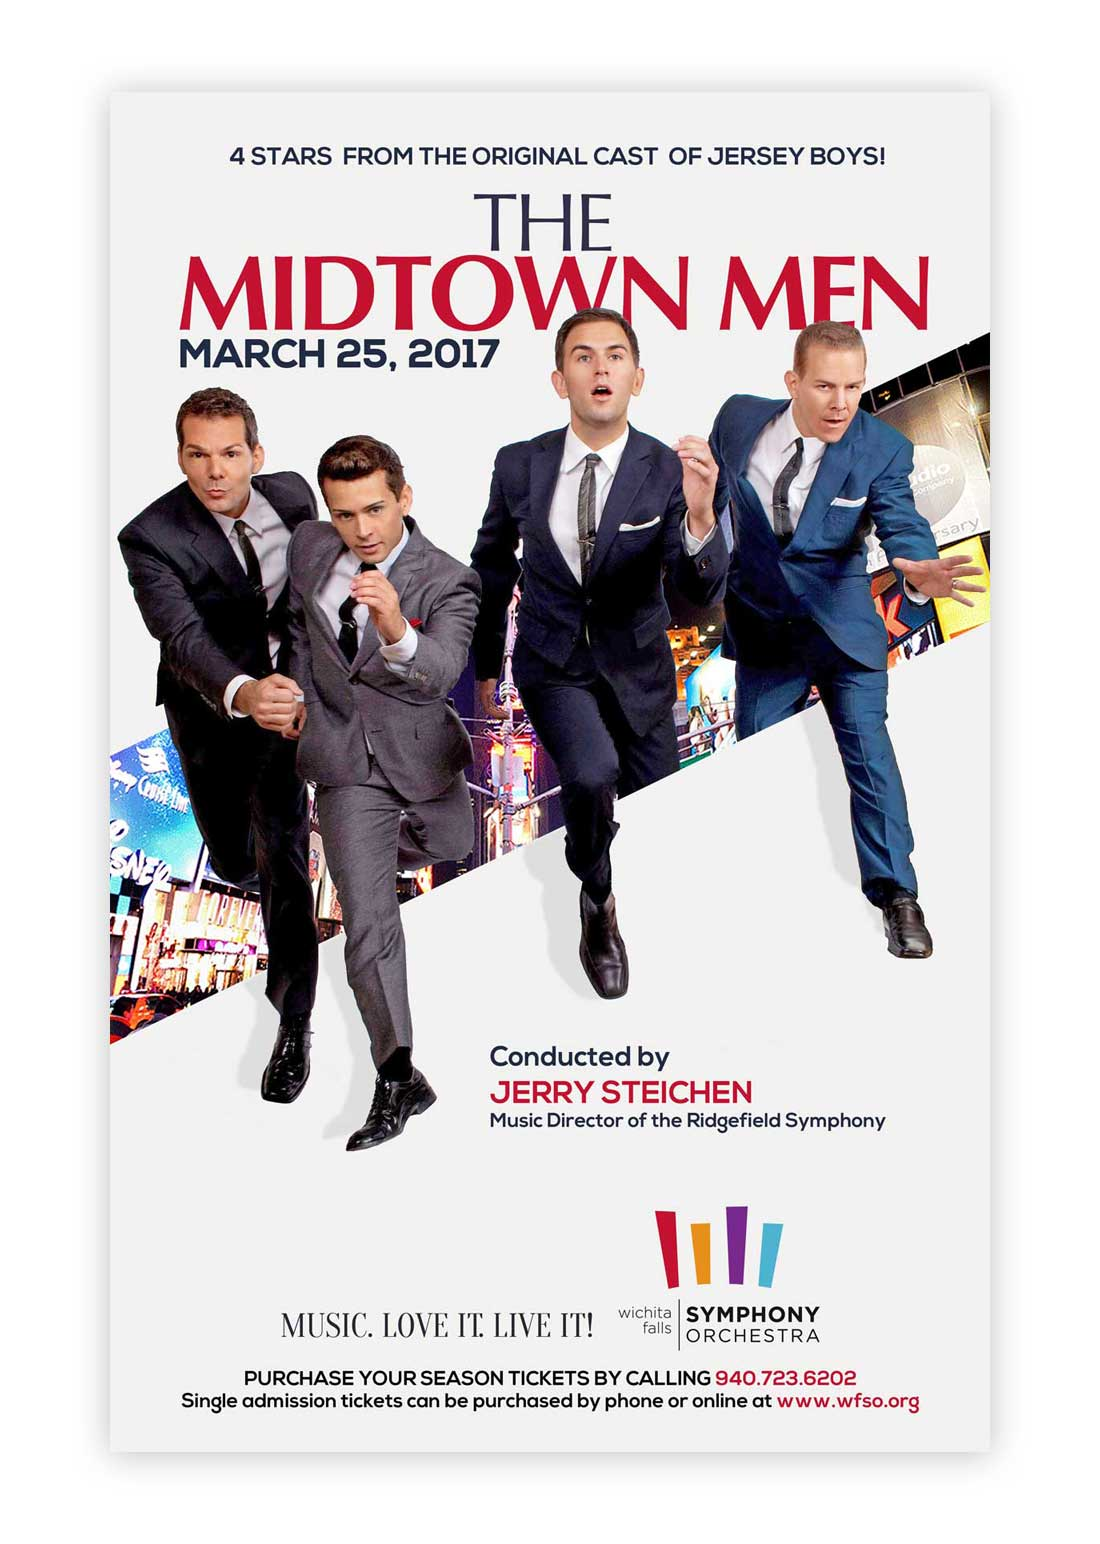 The Midtown Men Poster Design